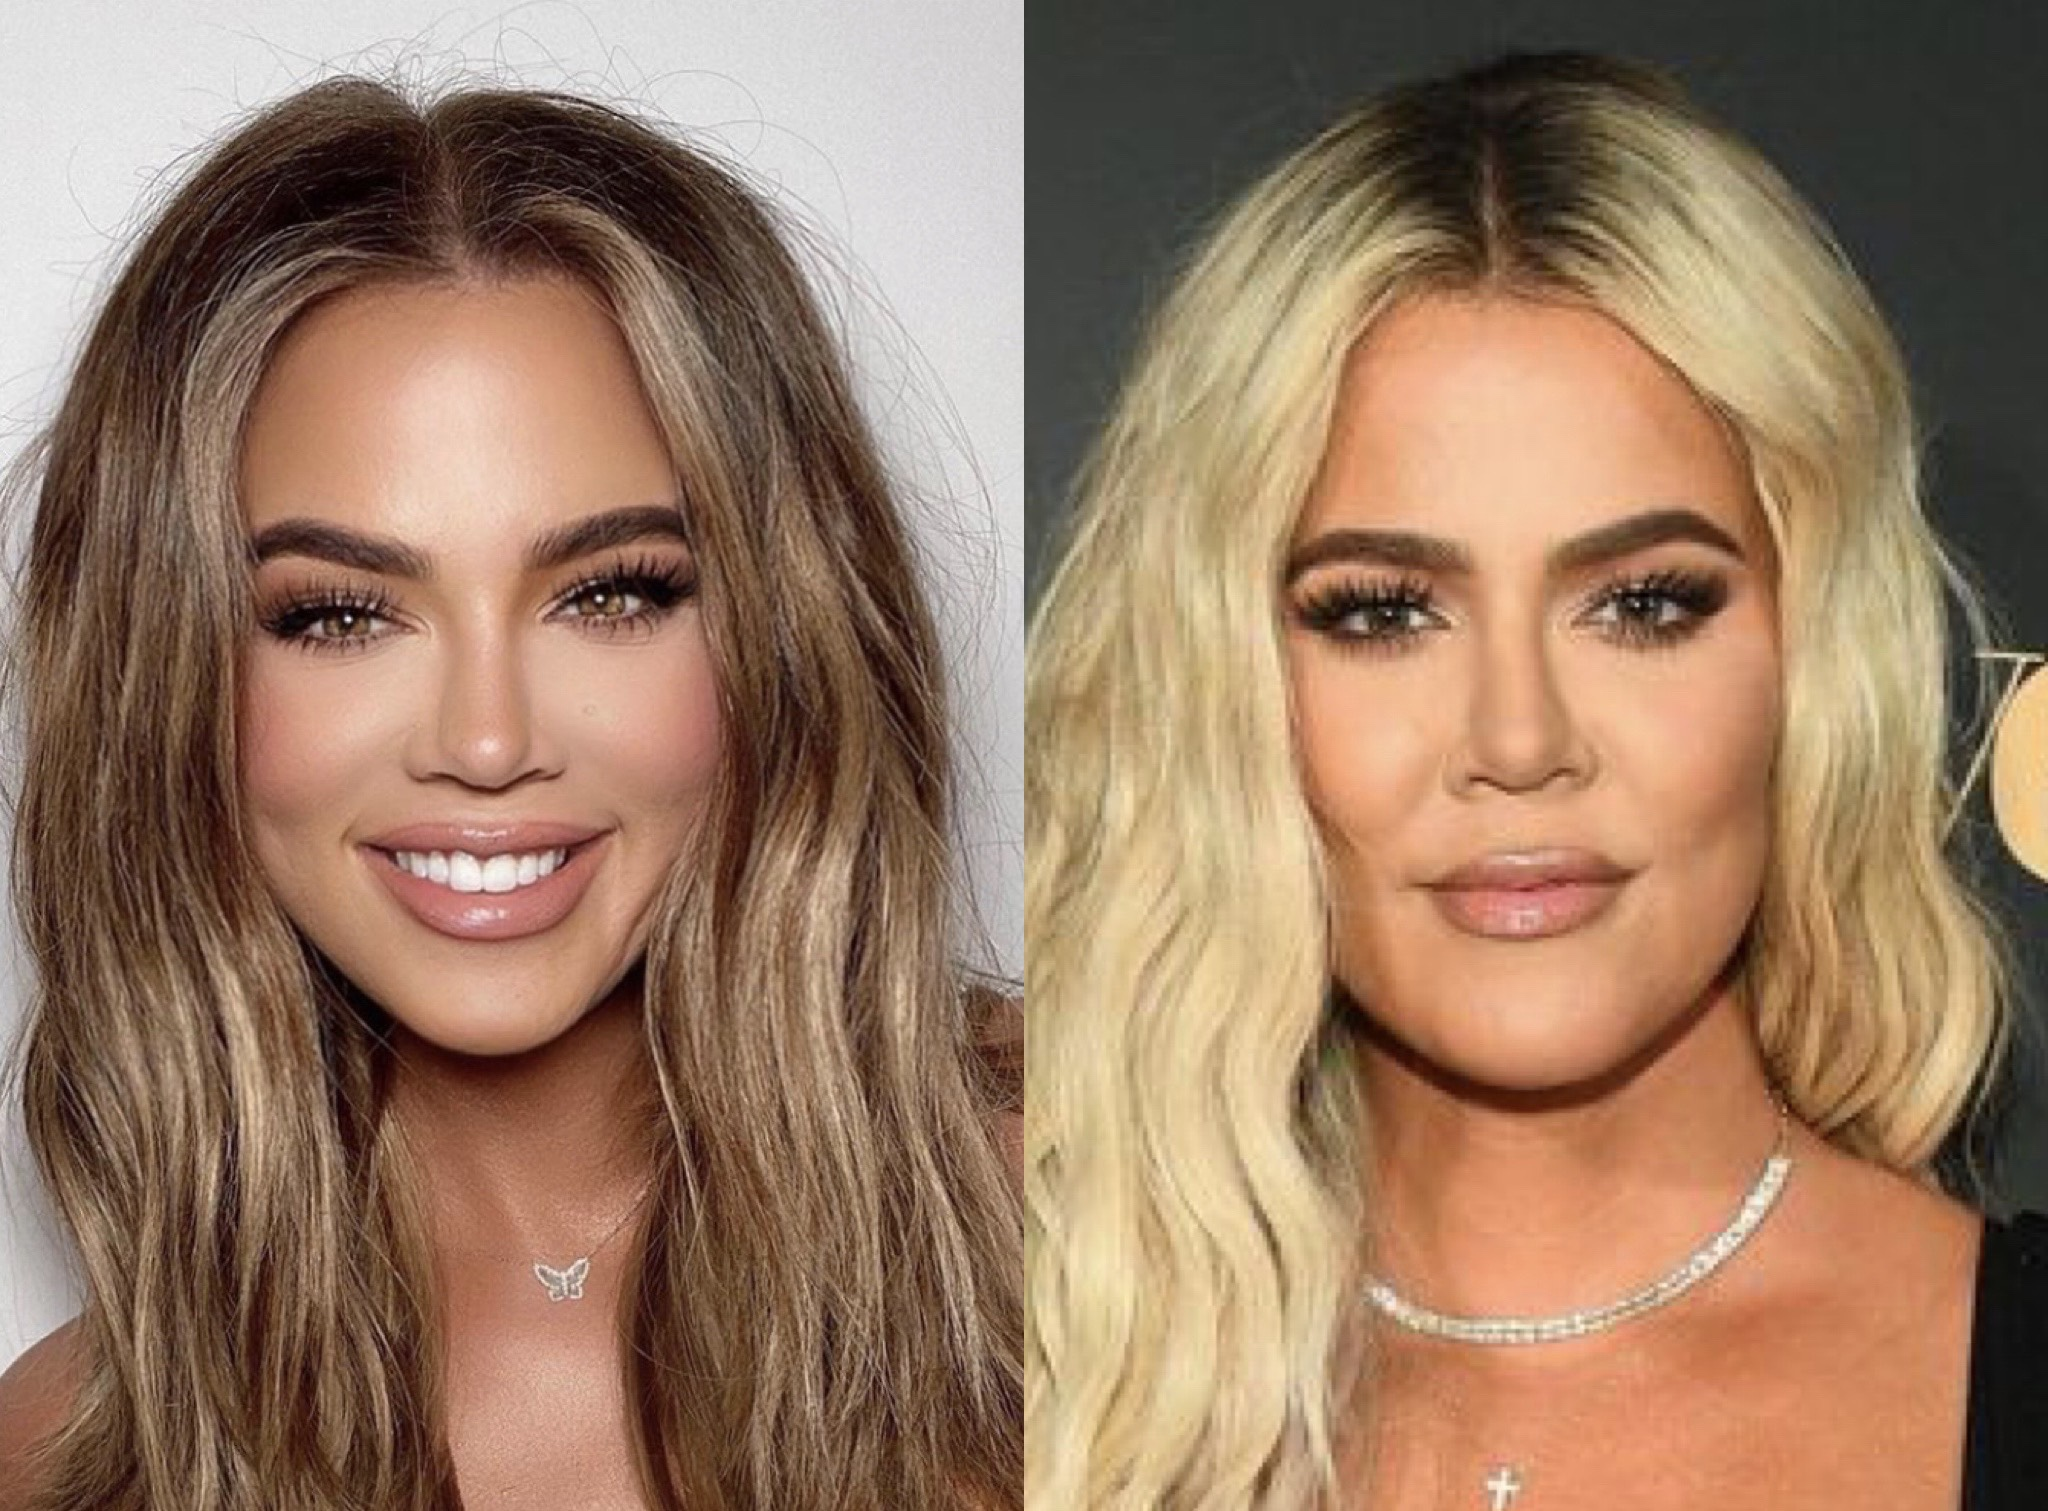 The Kardashians Are Taking Legal Action To Get This Picture Of Khloe Wiped From The Internet